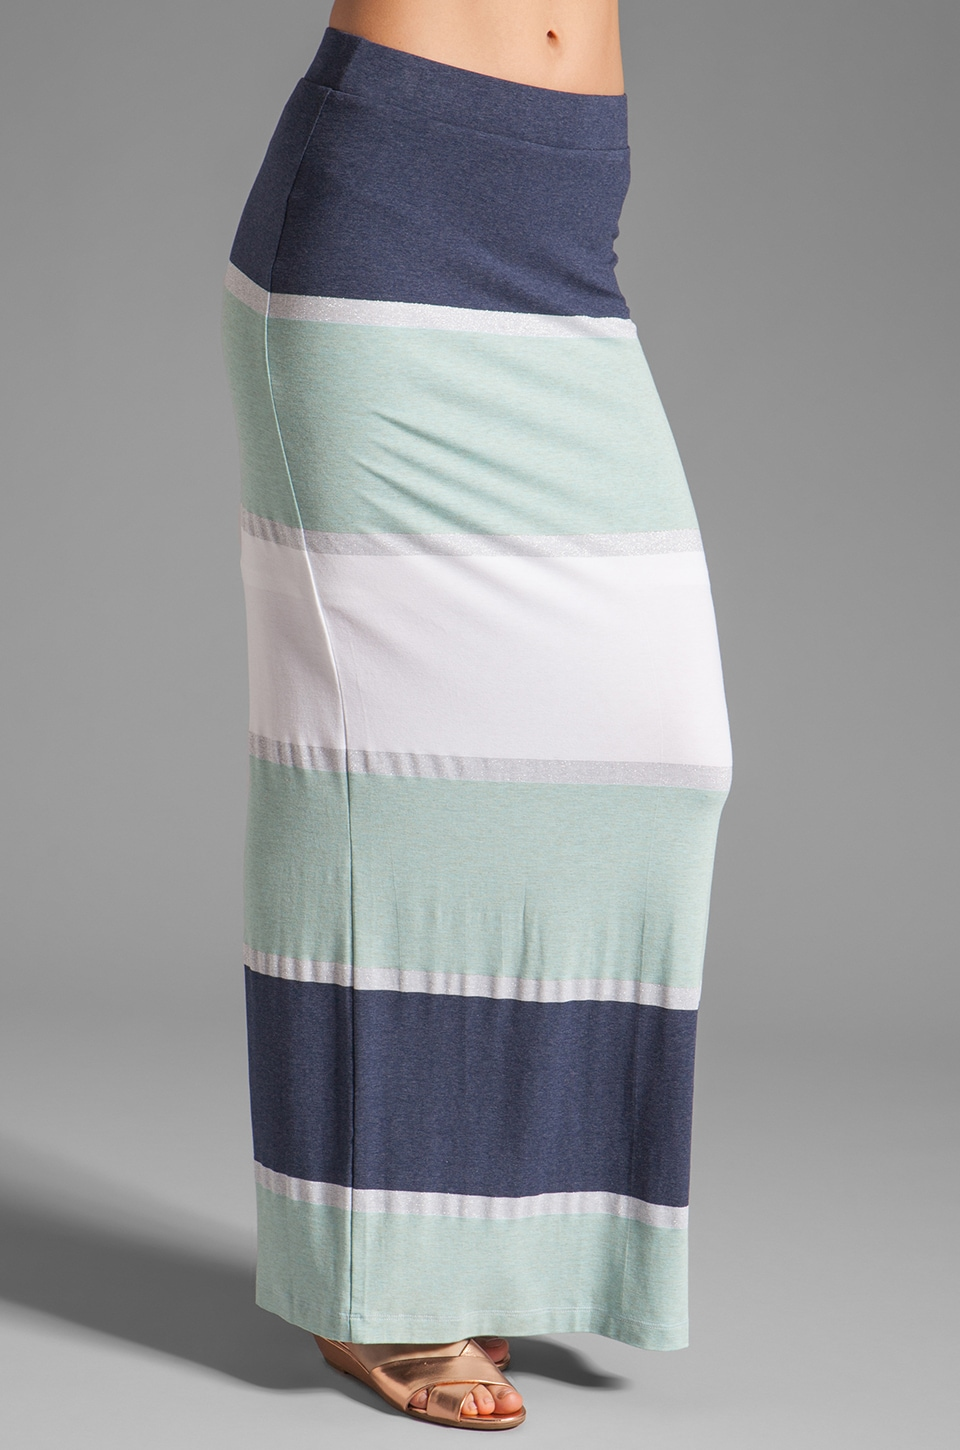 Heather Maxi Skirt with Slit in Aqua